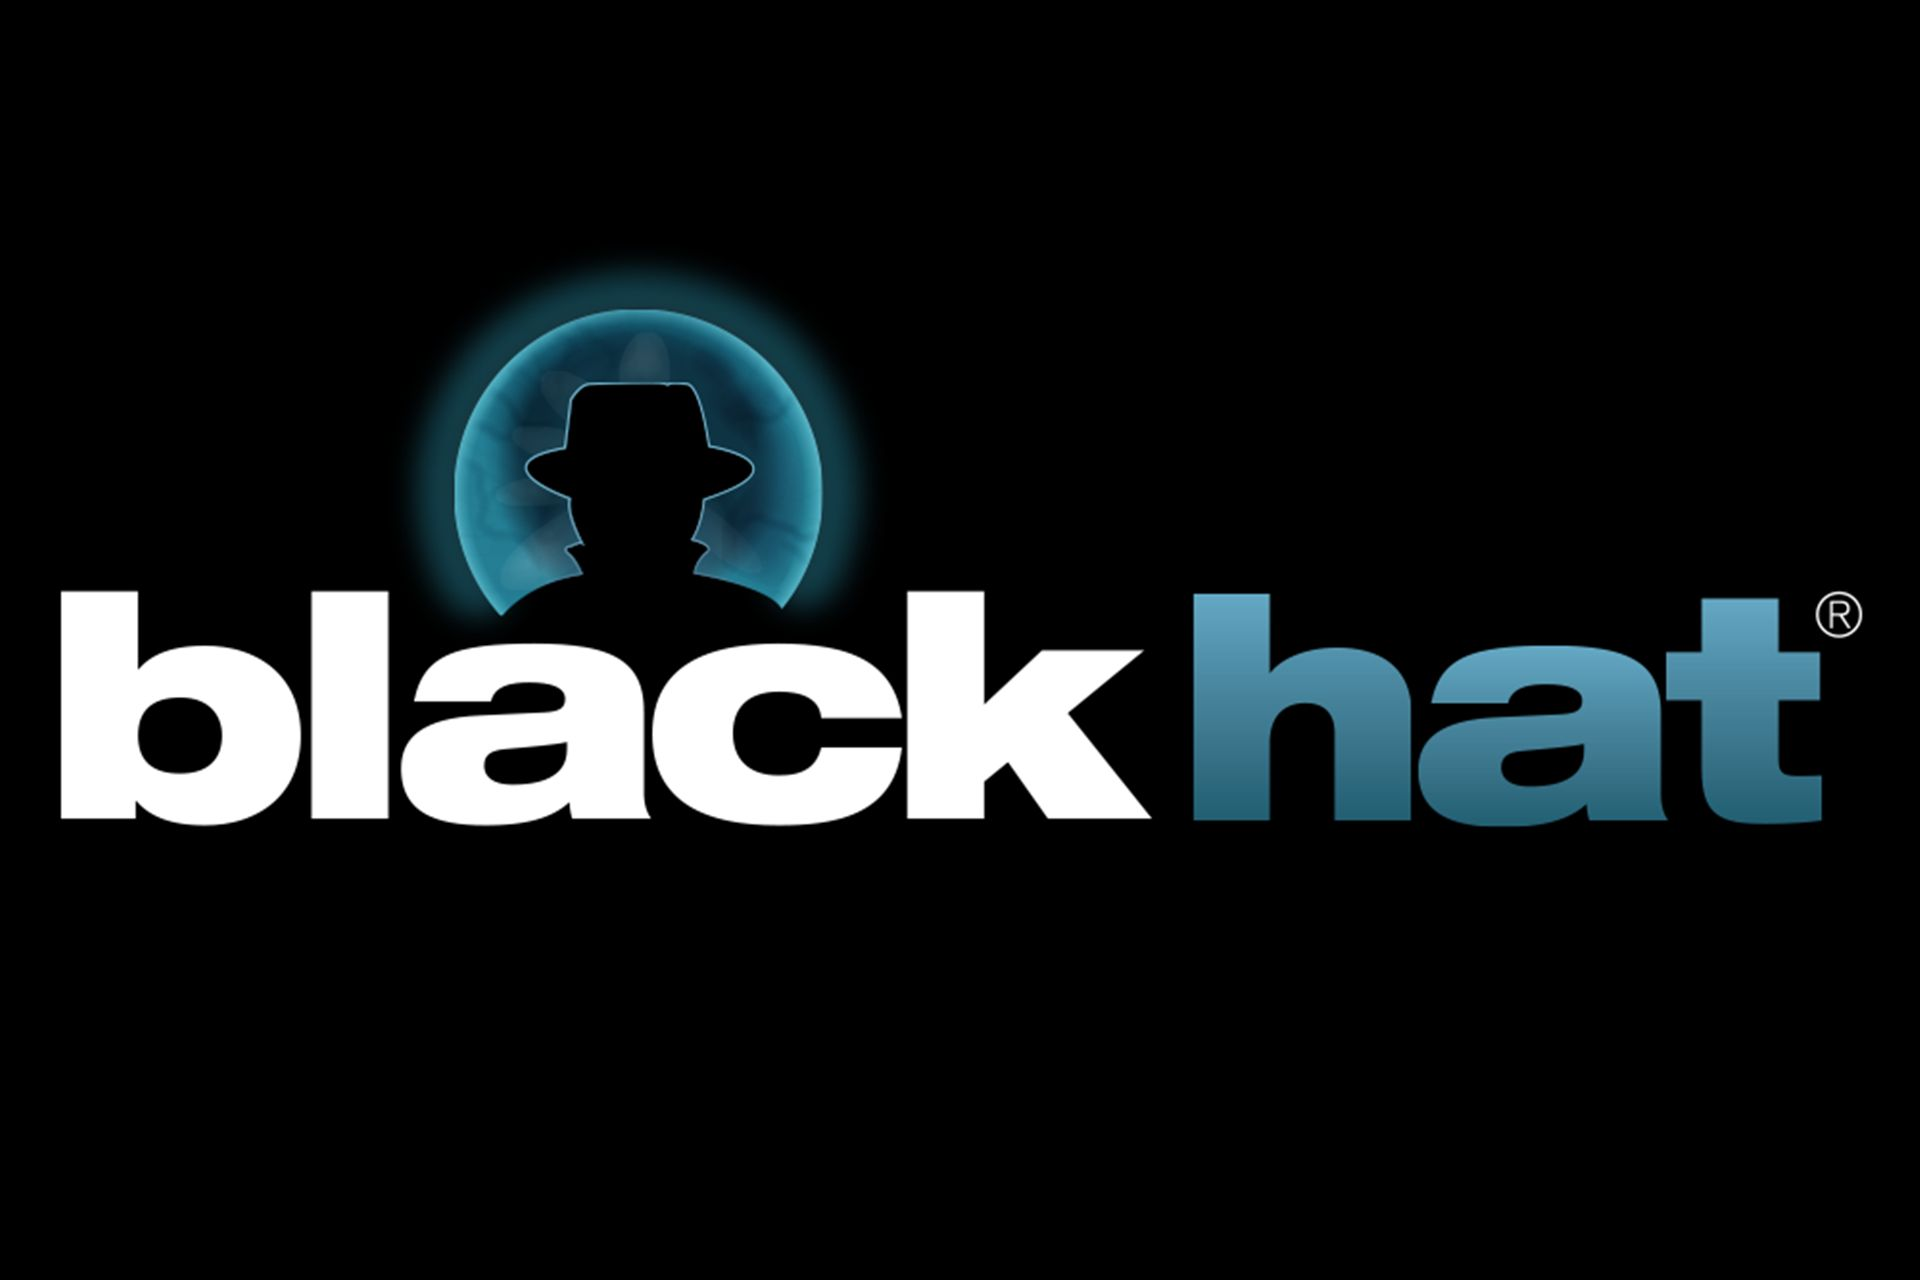 11 blackhat hd wallpapers backgrounds wallpaper abyss